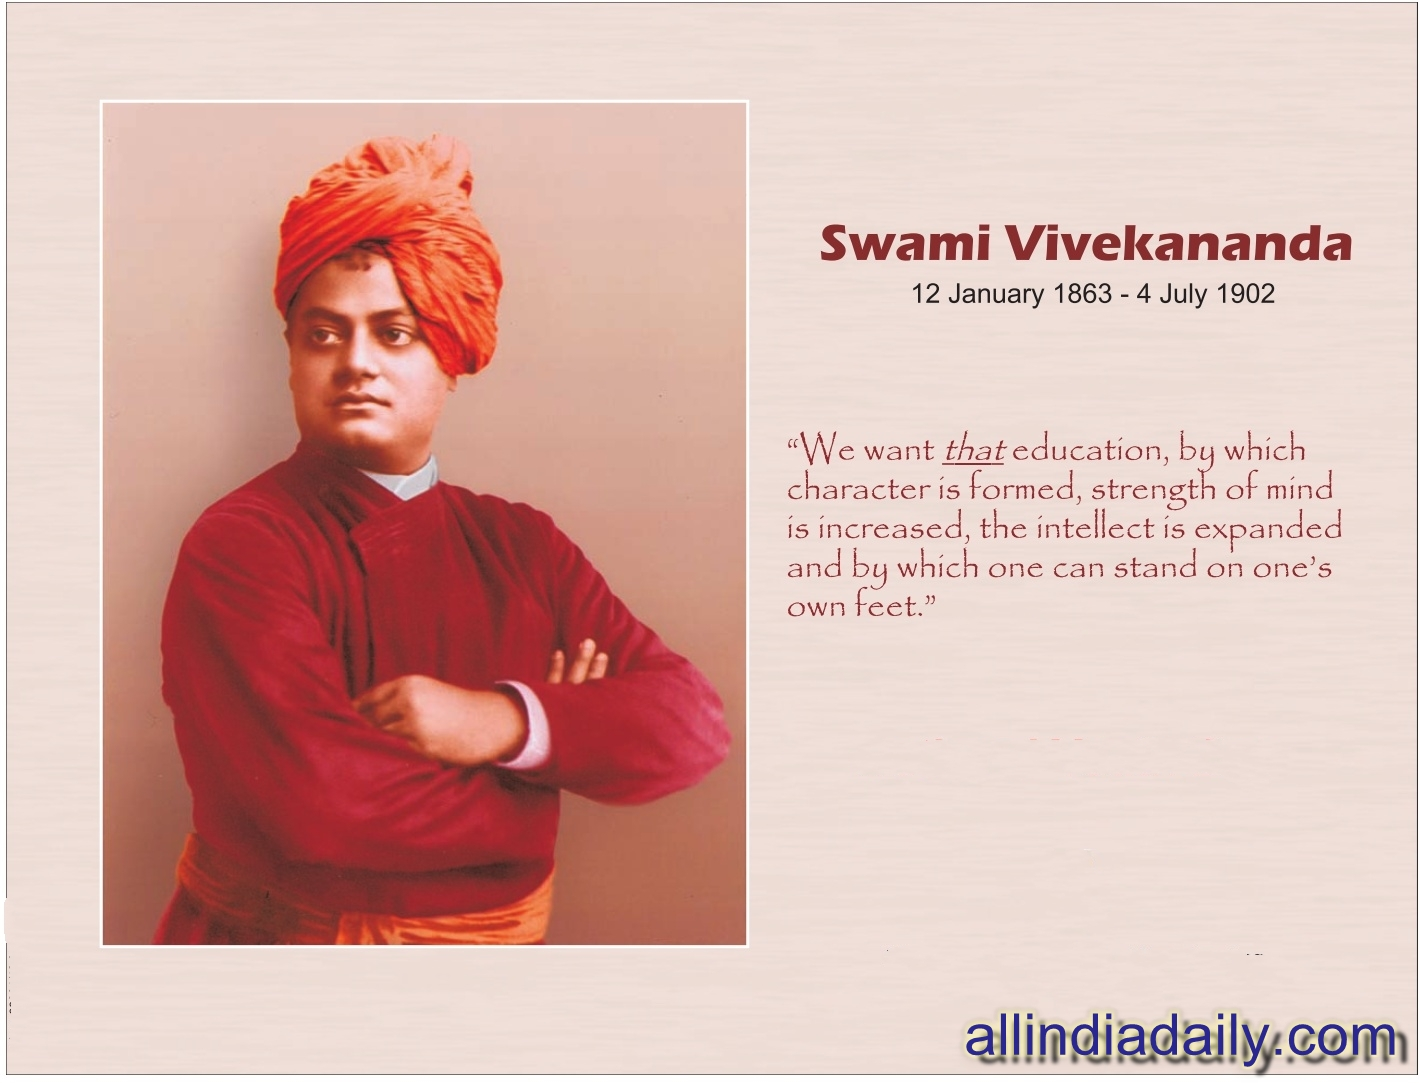 Quotes Vivekananda Nimma  Girish Swami Vivekananda's Biography Quotes And Wallpapers